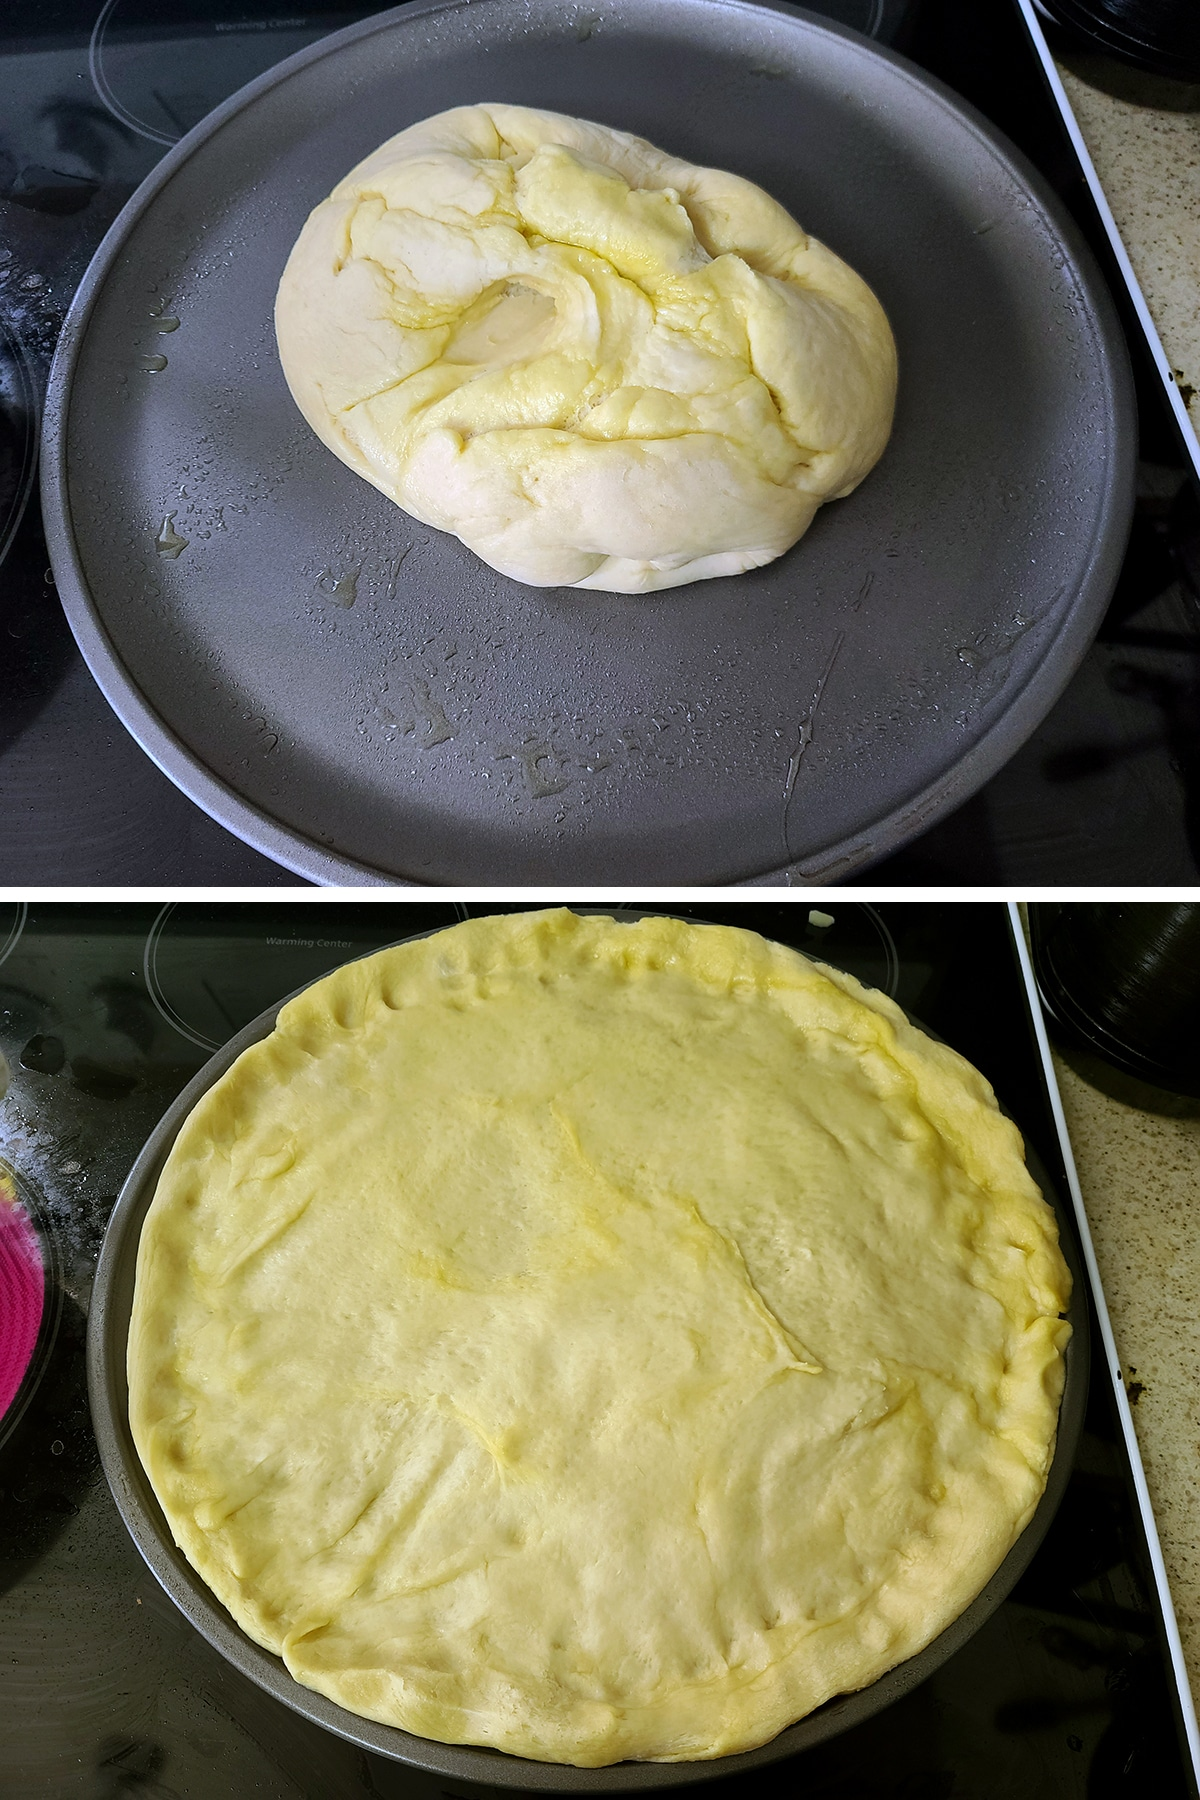 A dough ball being spread out on a greased pizza pan.